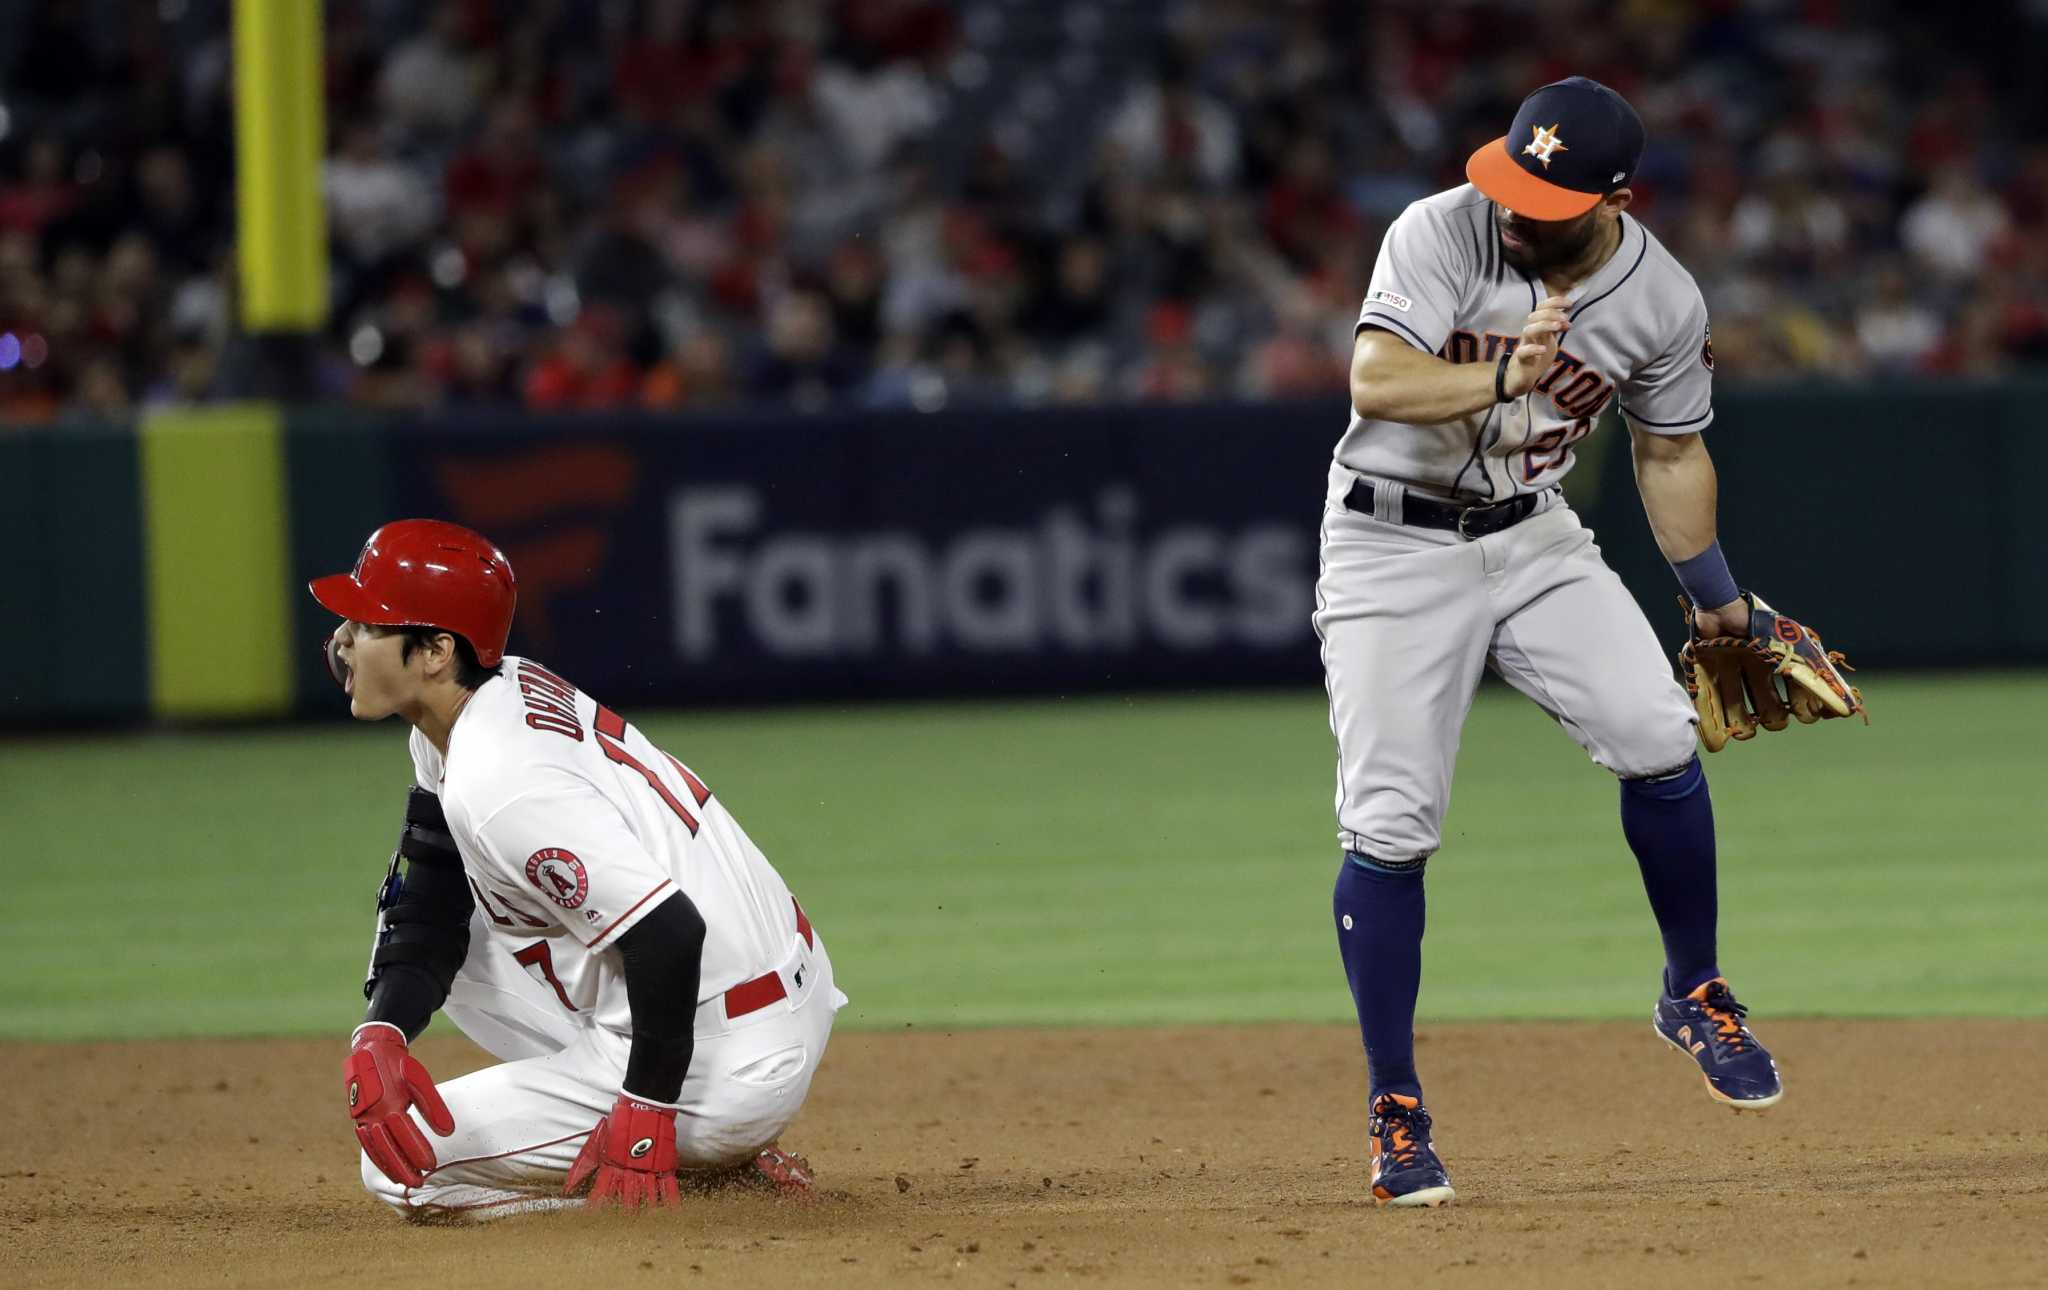 Misplay display part of trying stretch for Astros